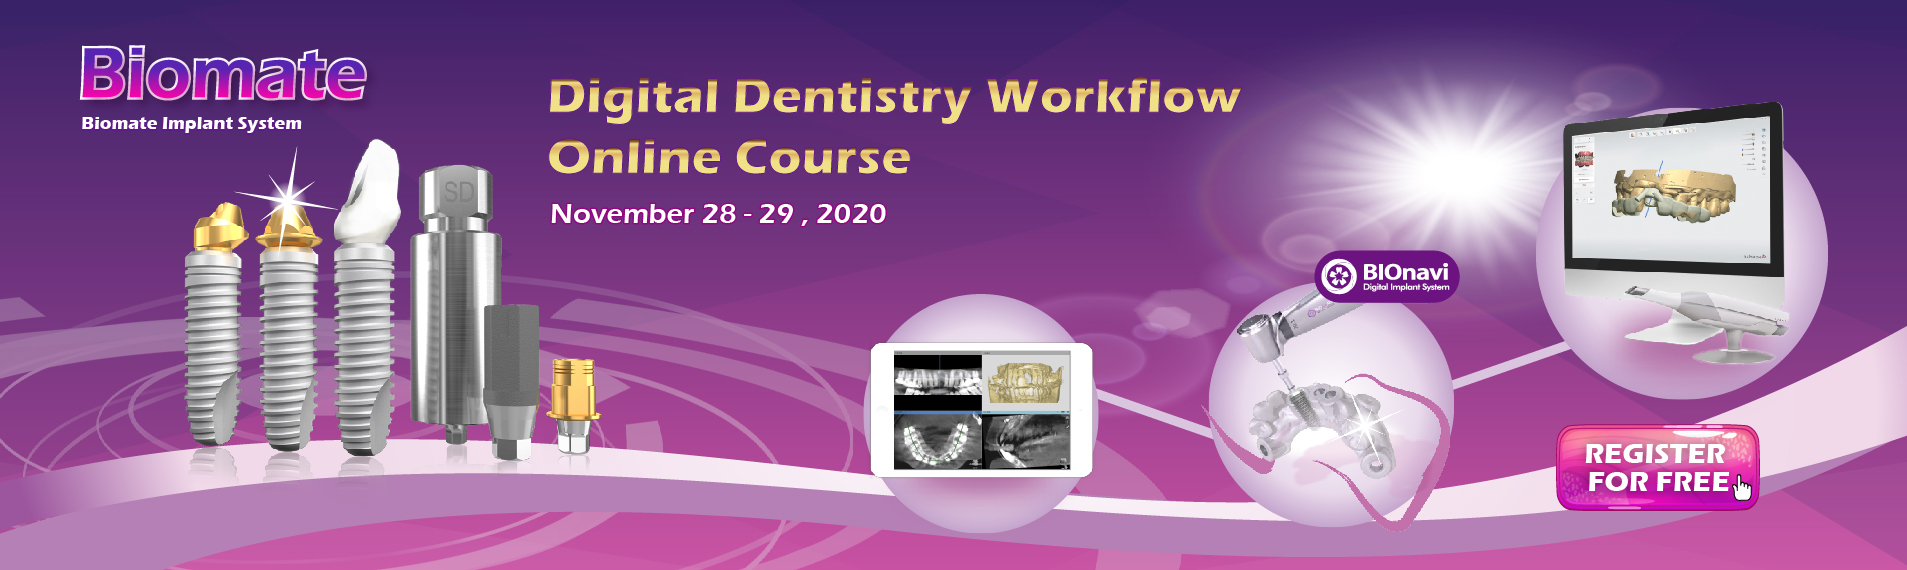 Biomate Implant System: Digital Dentistry Workflow Online Course